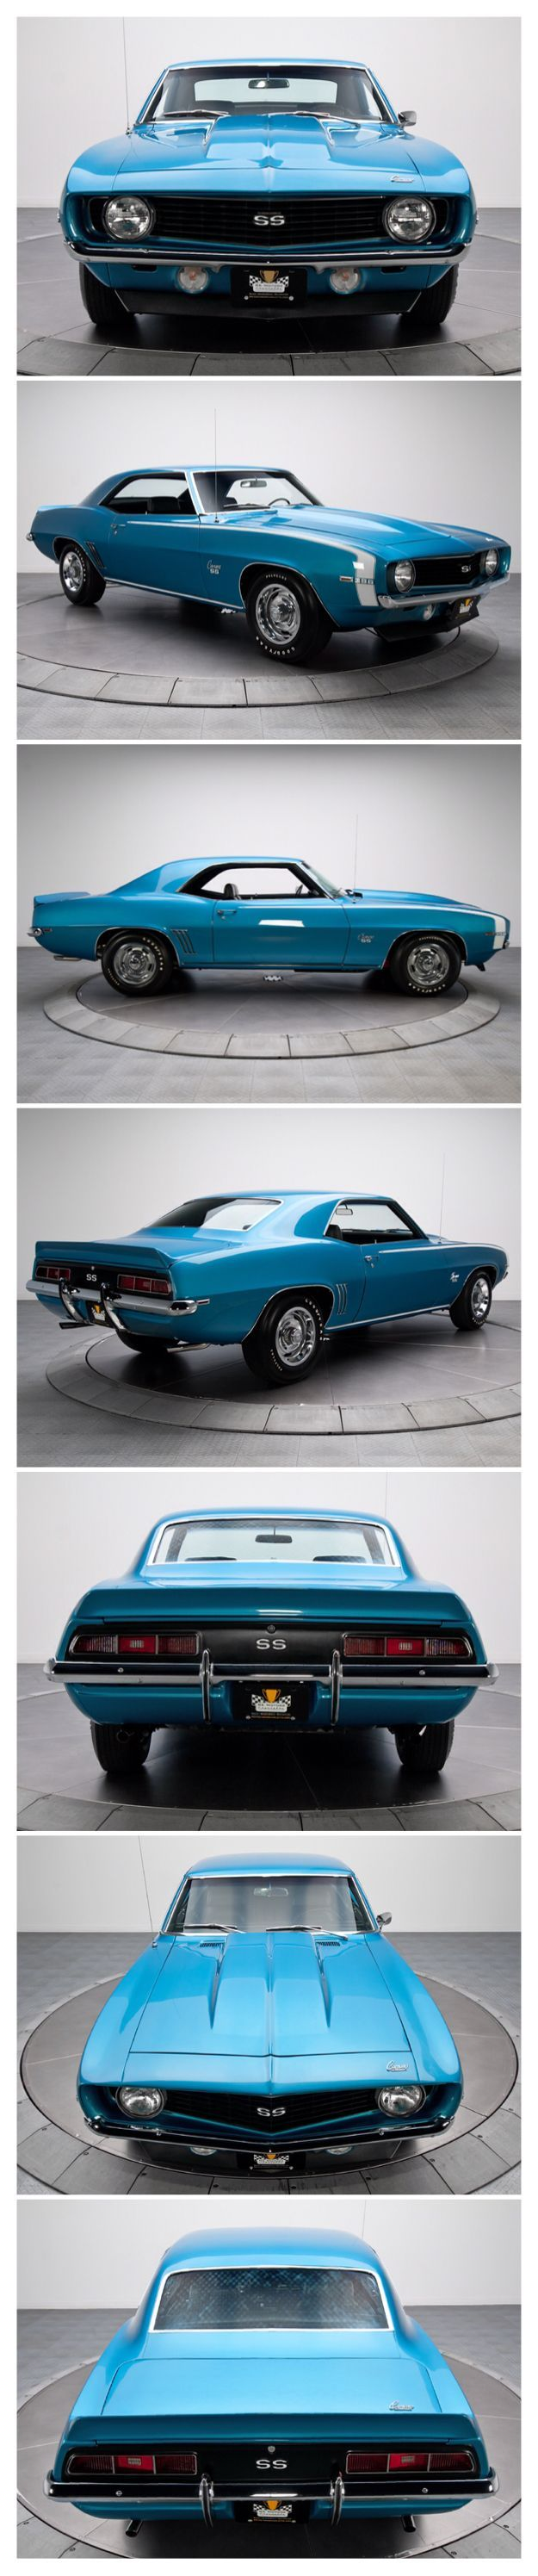 3840 best Camaros images on Pinterest | Chevy camaro, Cool cars and ...